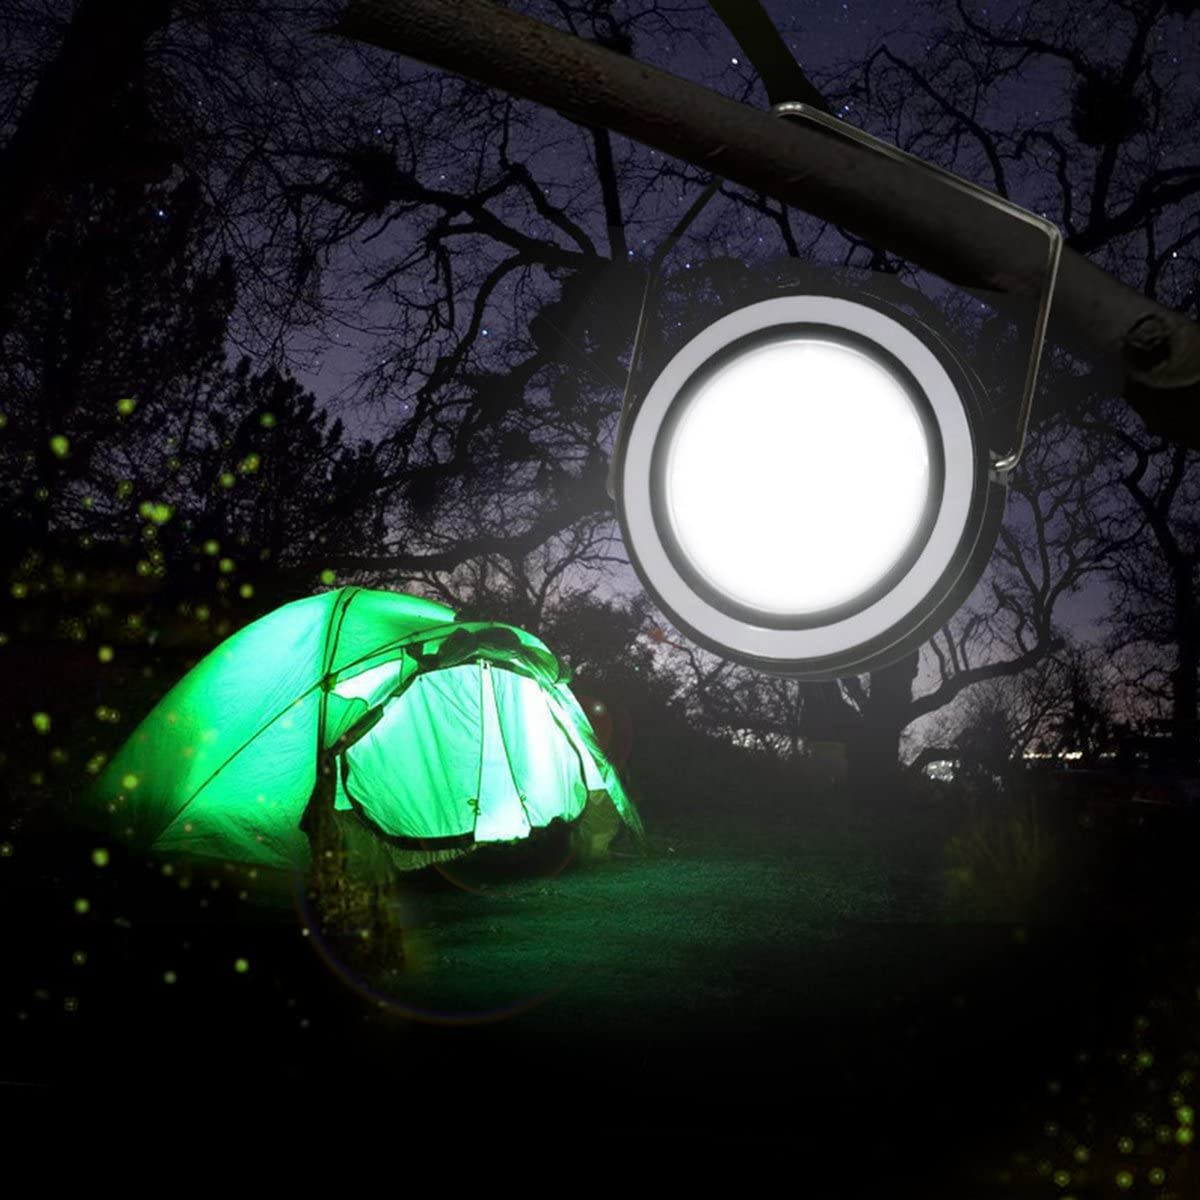 LegendTech Portable Solar Panel Lantern with USB ABS/Emergency COB LED Light Power 360 Degrees Adjustable Multi-Function High Low Light Desktop Round Lamp for Lighting Charging Outdoor Activities